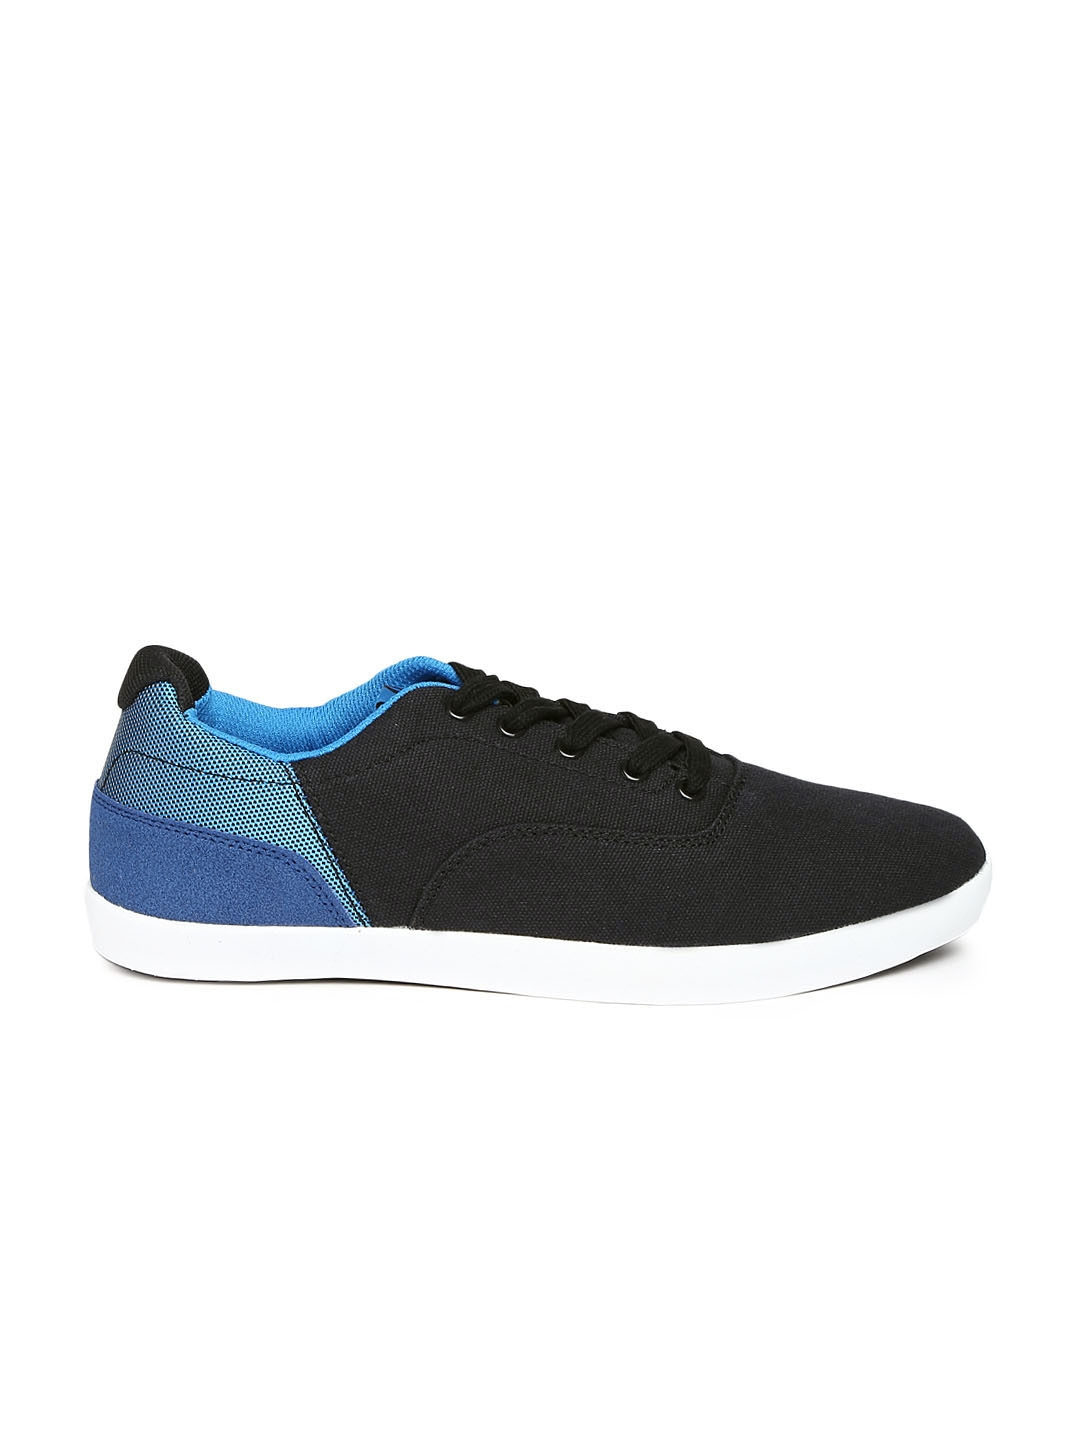 myntra roadster black casual shoes 762306 buy myntra